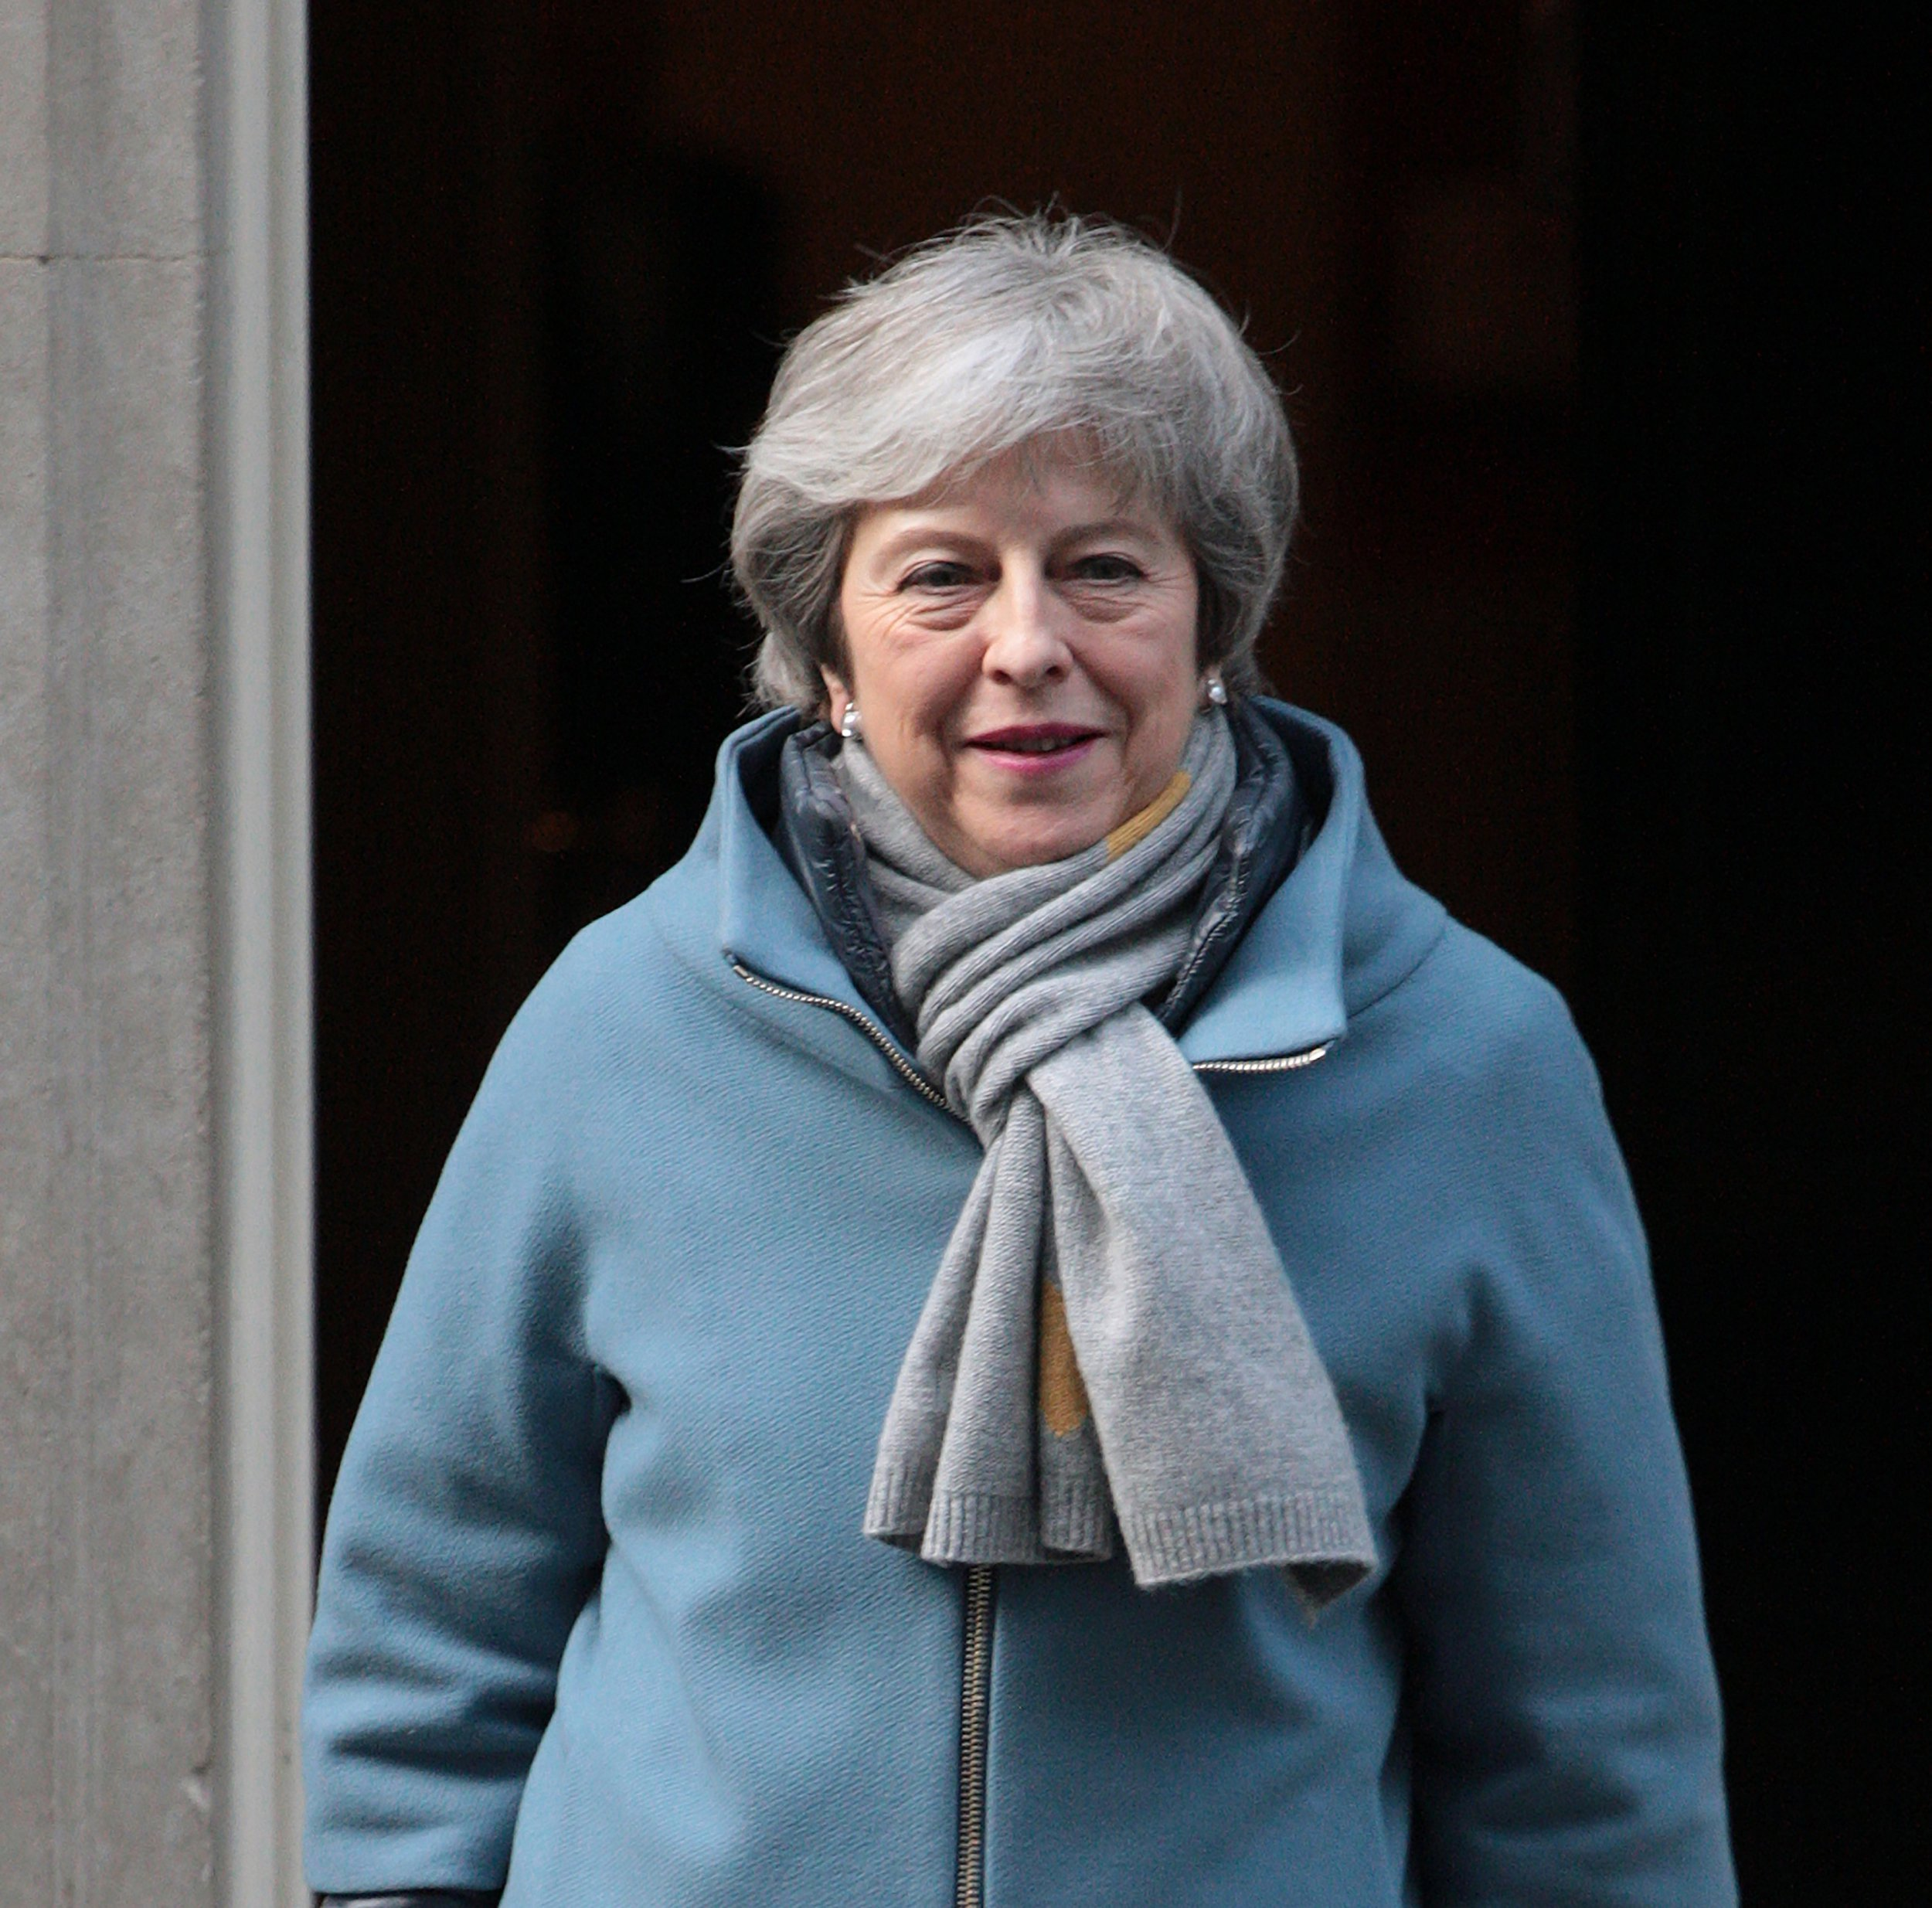 British Prime Minister Theresa May leaves No.10 Downing St to go the Houses of Parliament where MP???s will vote to extend Article 50 beyond the March 29th deadline, on March 14th 2019. Following the vote The European Union will have to decide whether to extend the Brexit deal. Photo by Hugo Philpott/UPIPHOTOGRAPH BY UPI / Barcroft Images